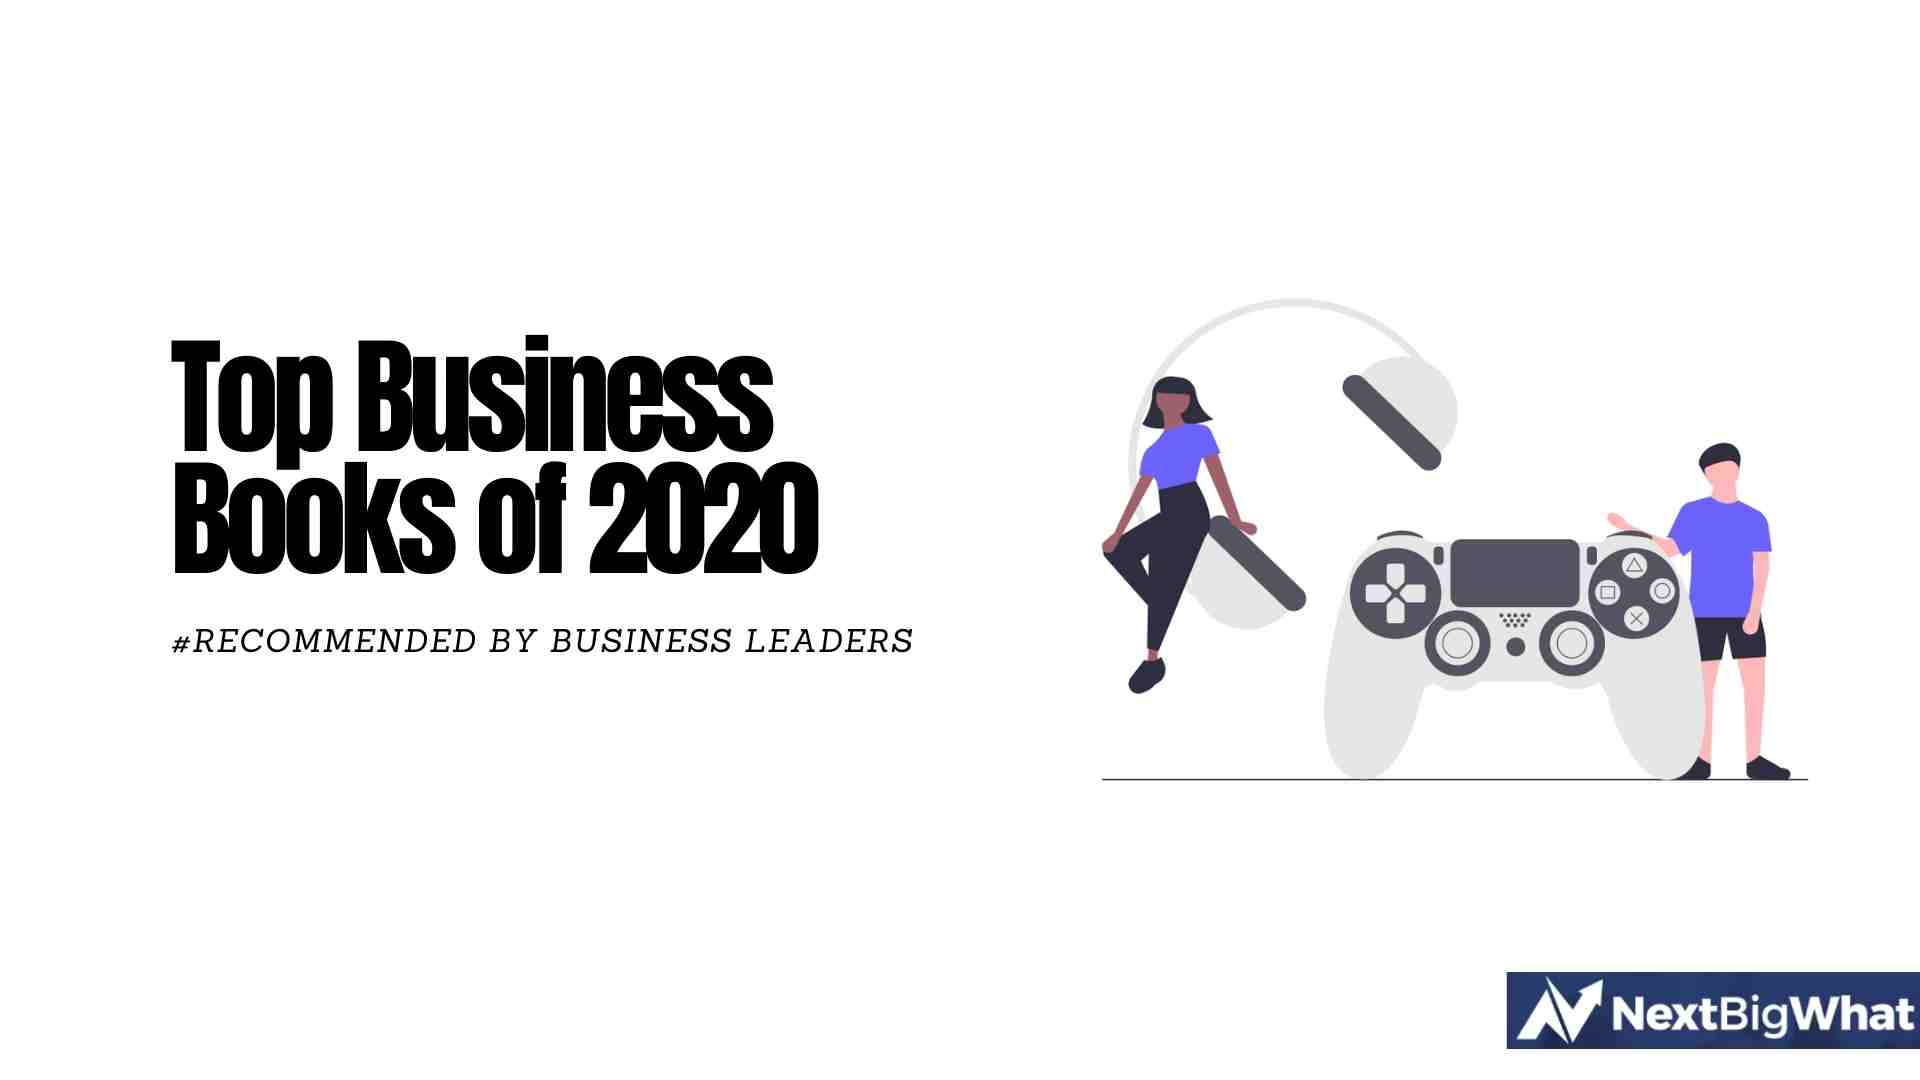 Top Business Books of 2020